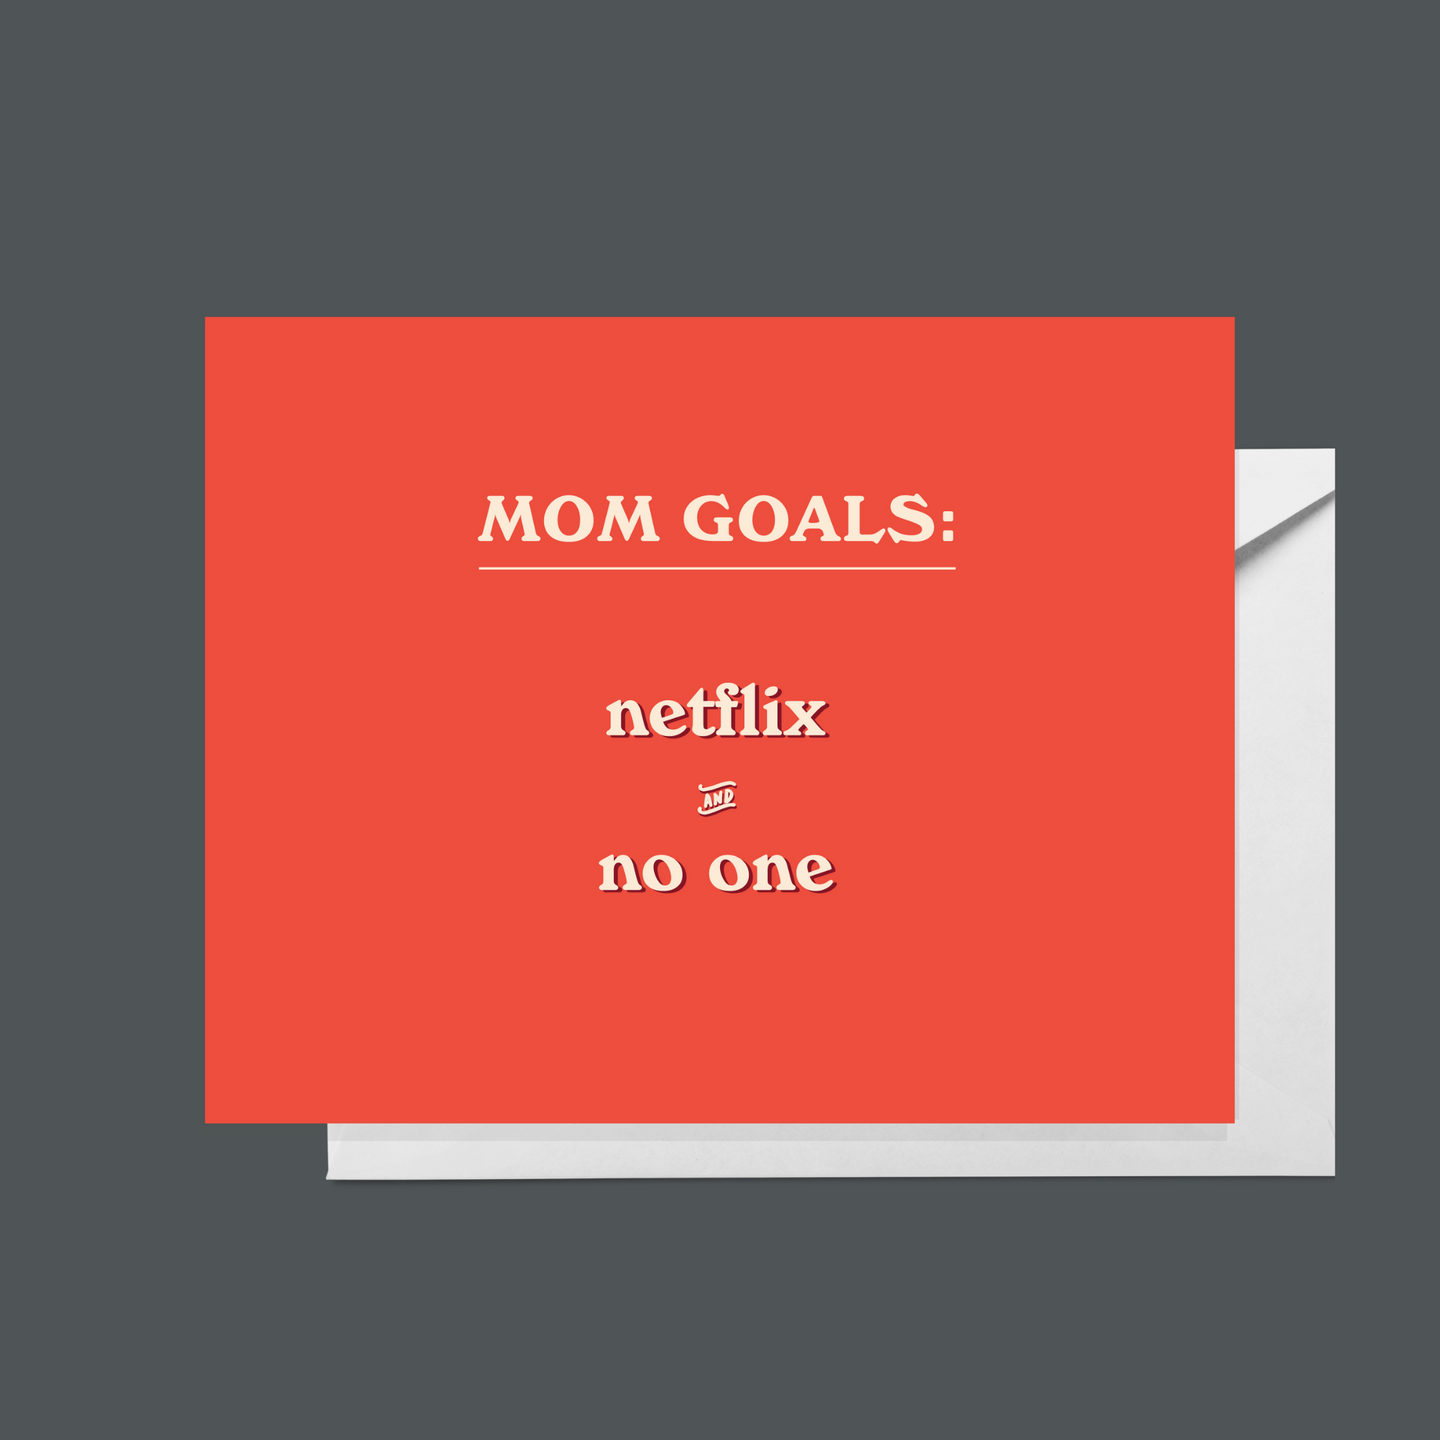 Mom Goals: Netflix and No One